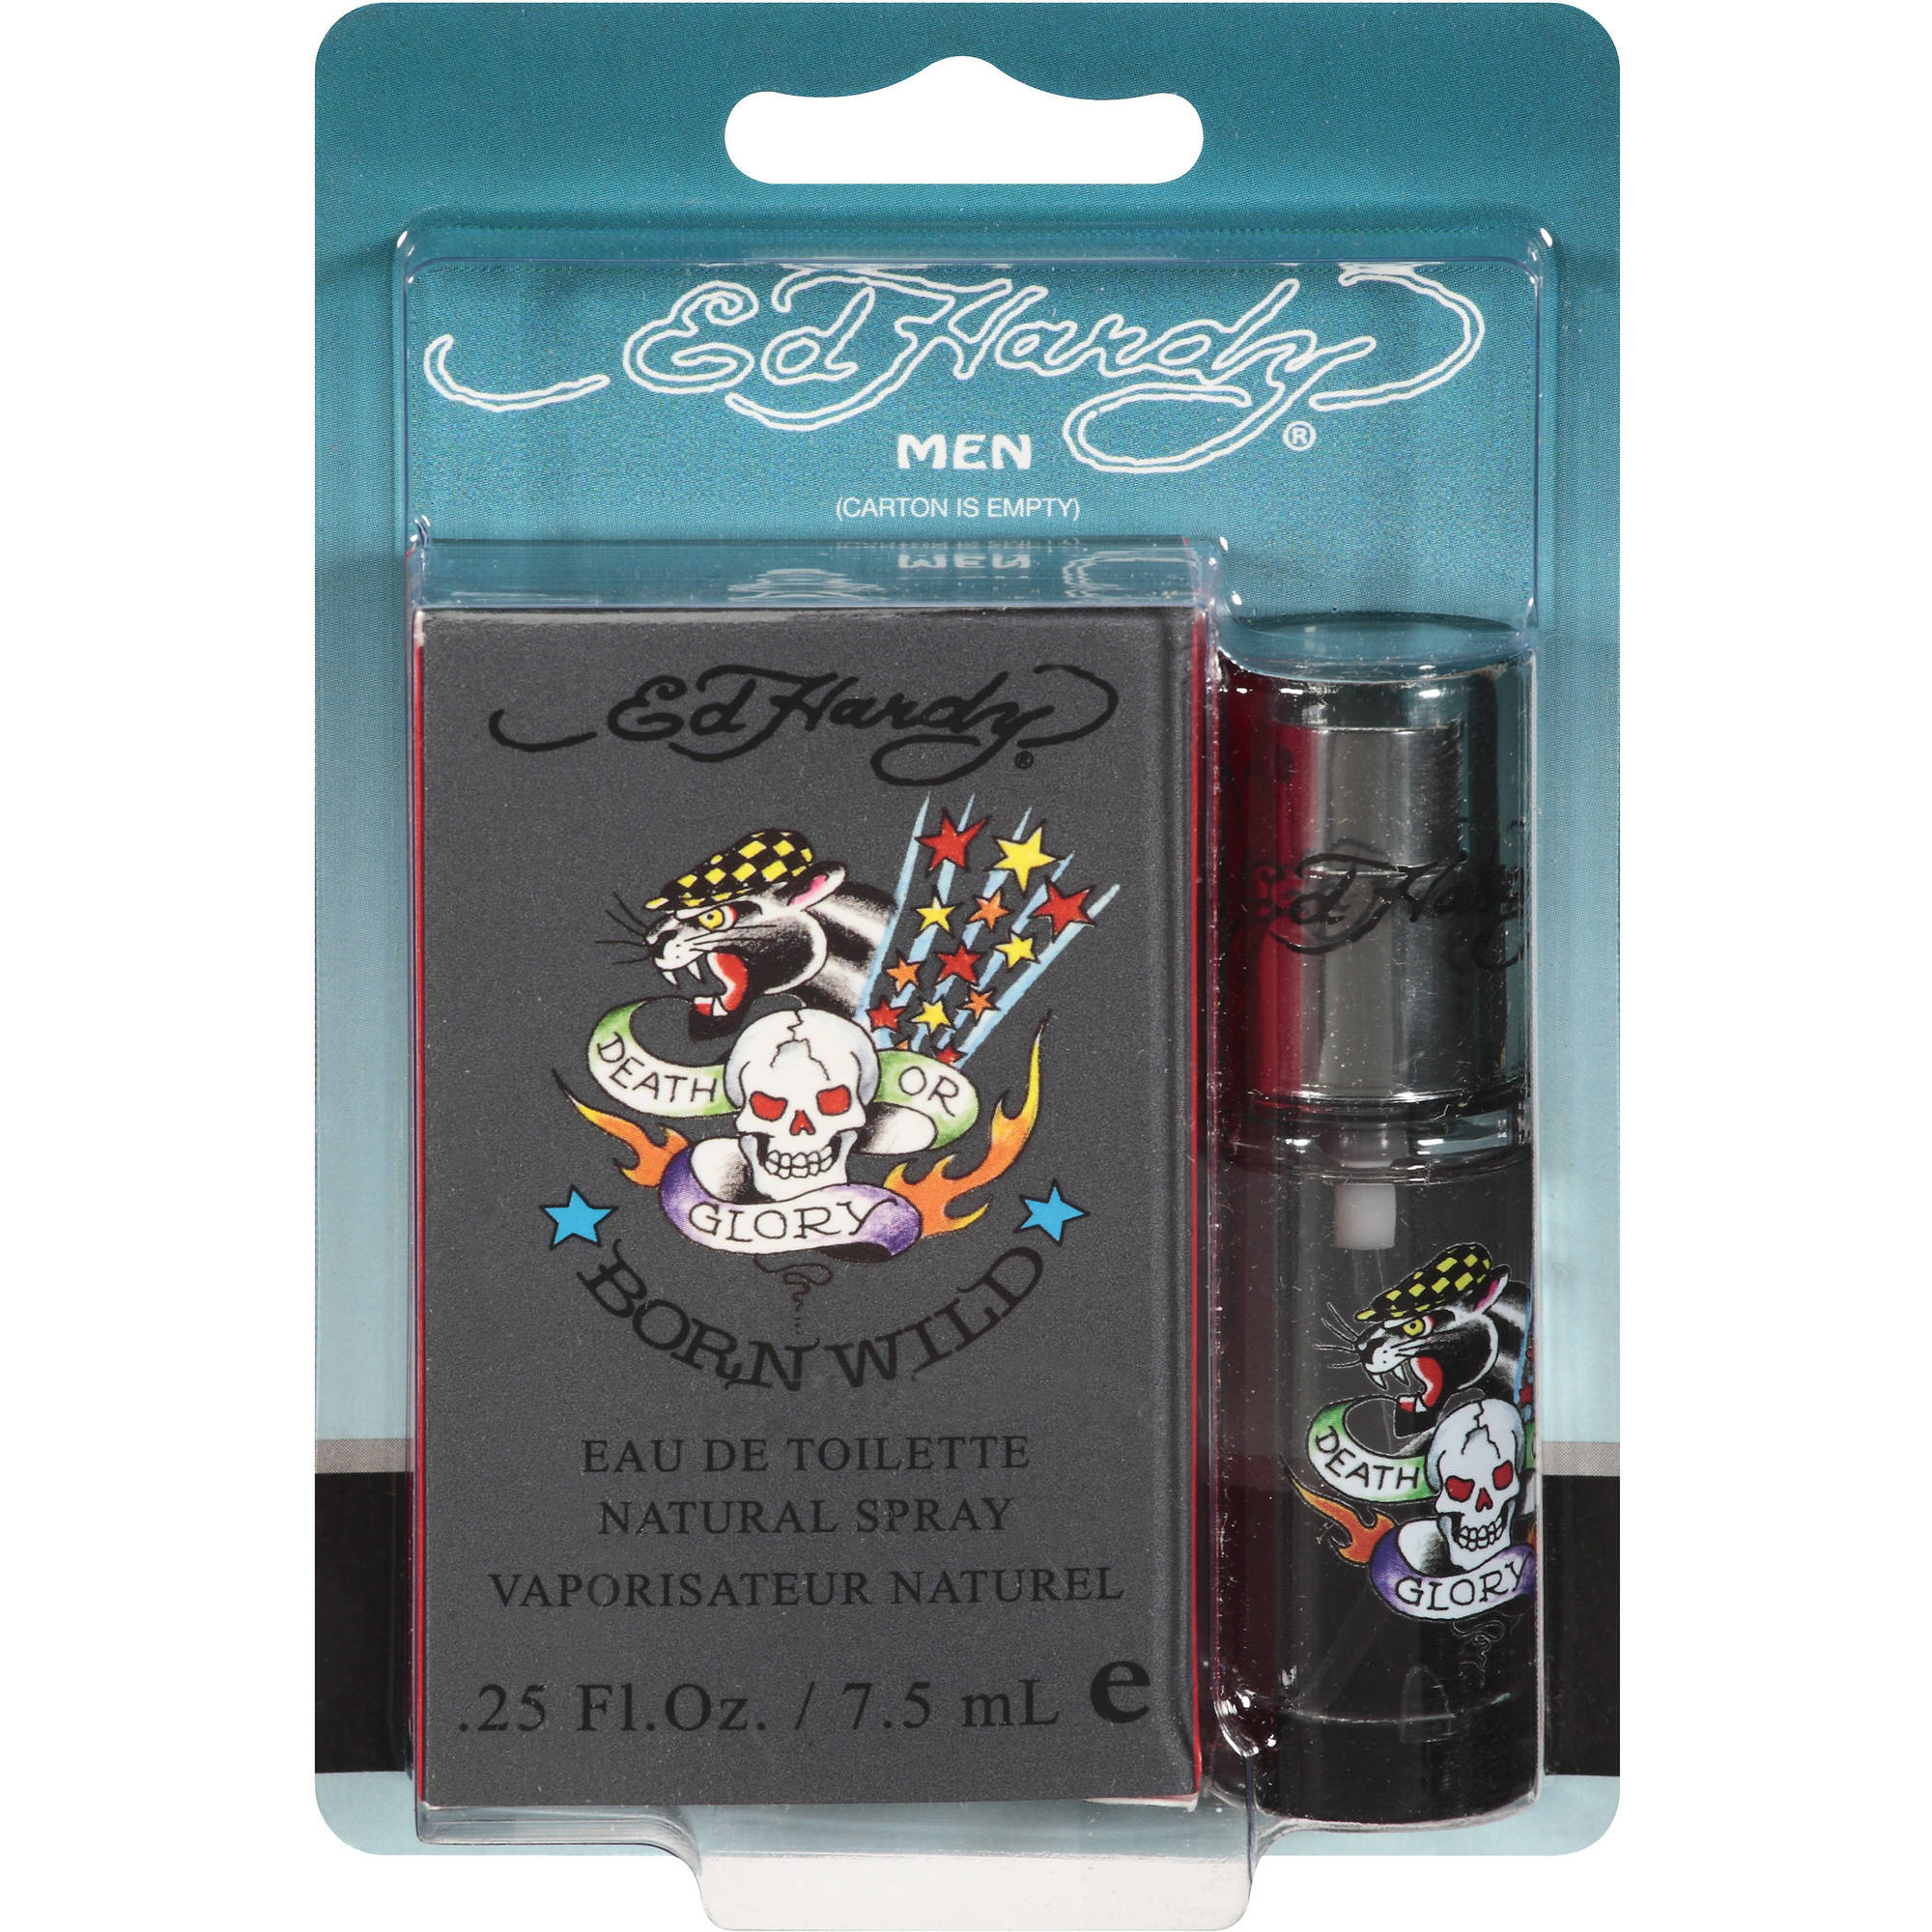 Ed Hardy Born Wild Eau de Toilette Spray for Men, 0.25 fl oz